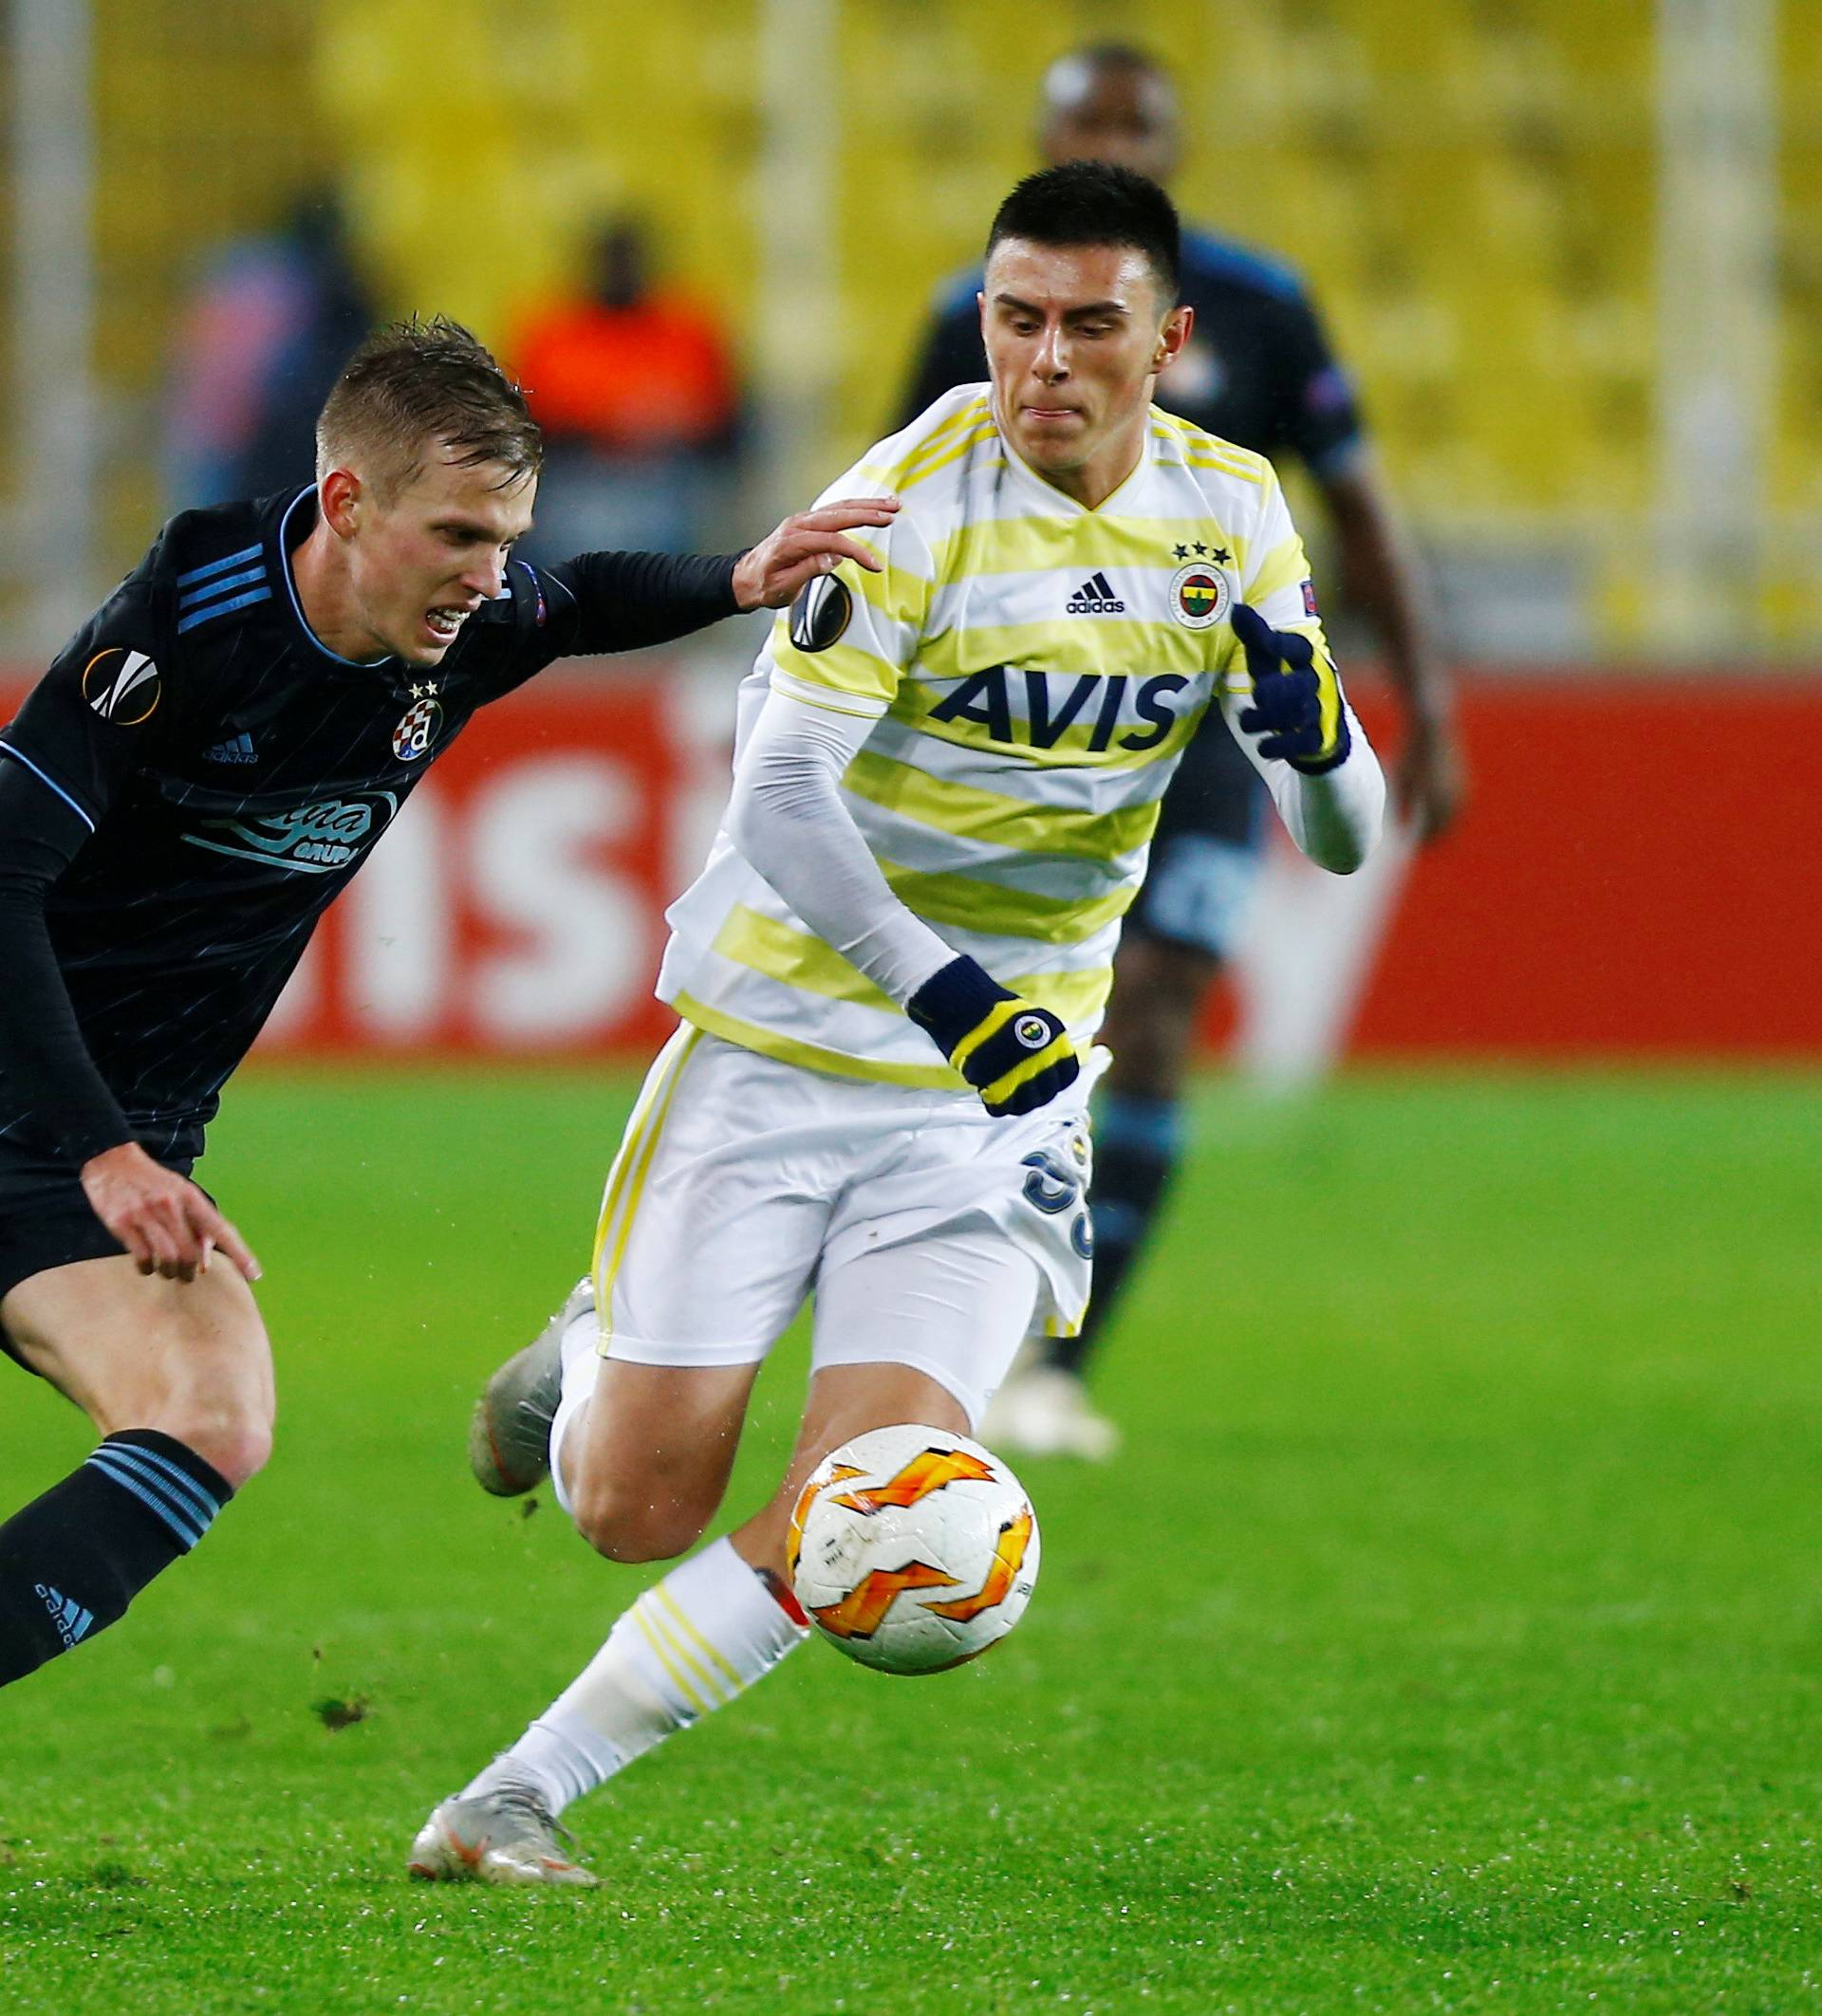 Europa League - Group Stage - Group D - Fenerbahce v GNK Dinamo Zagreb